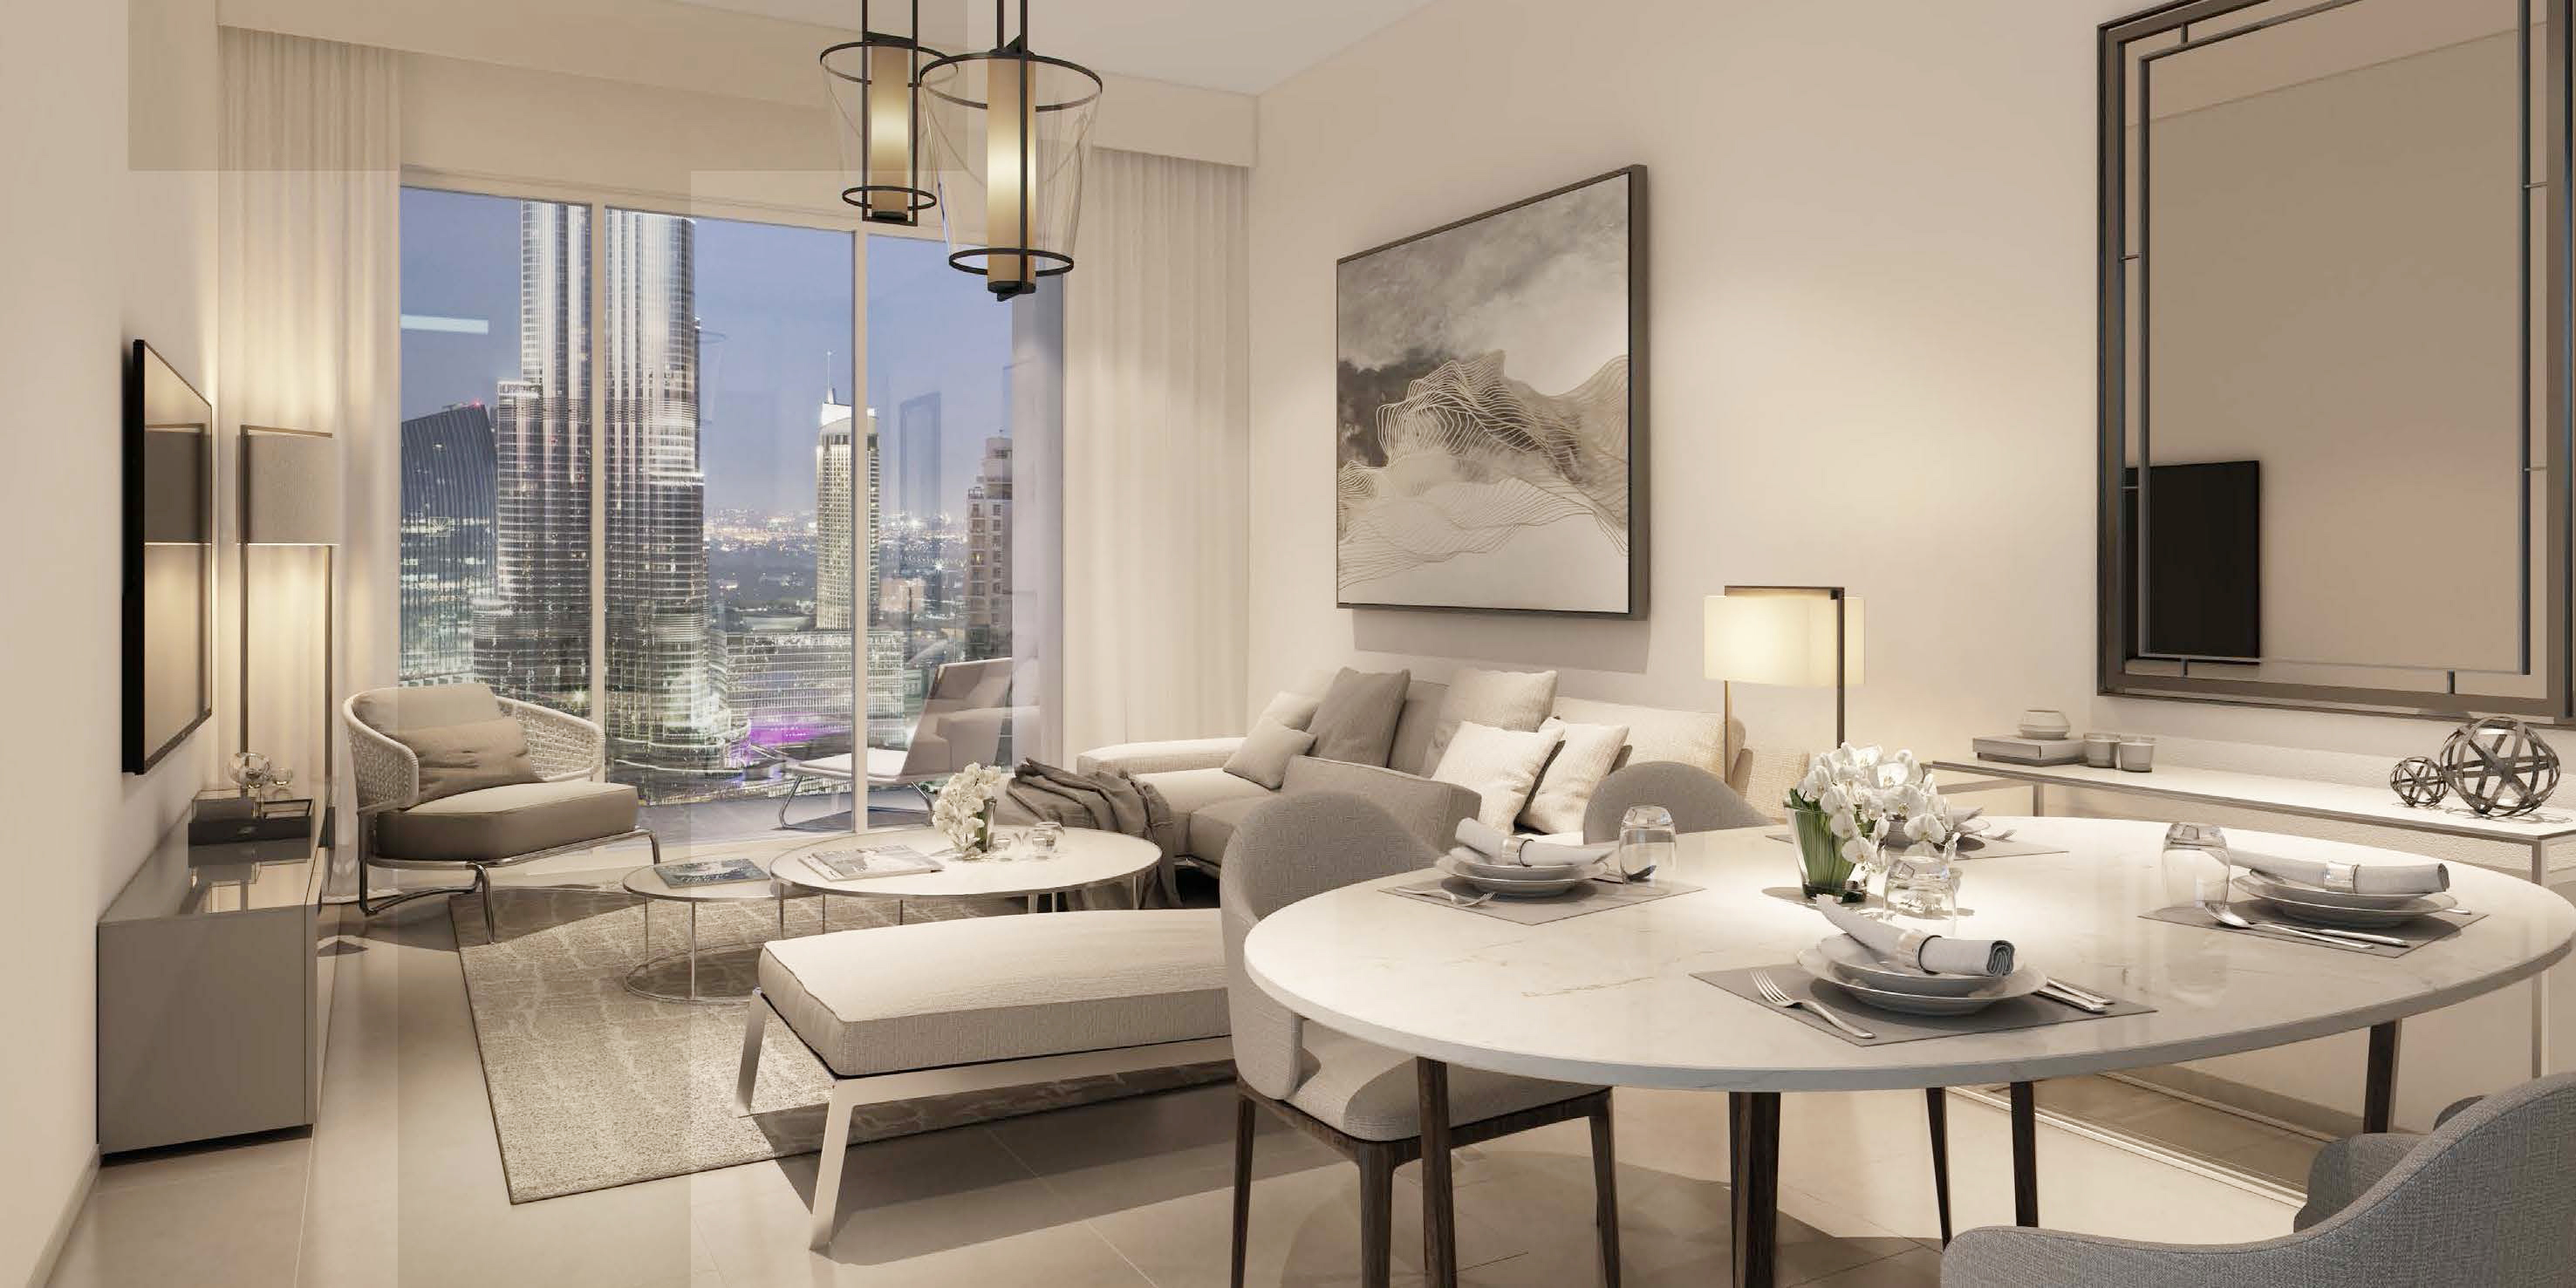 3 bedroom luxury apartment in dubai downtown for sale top real